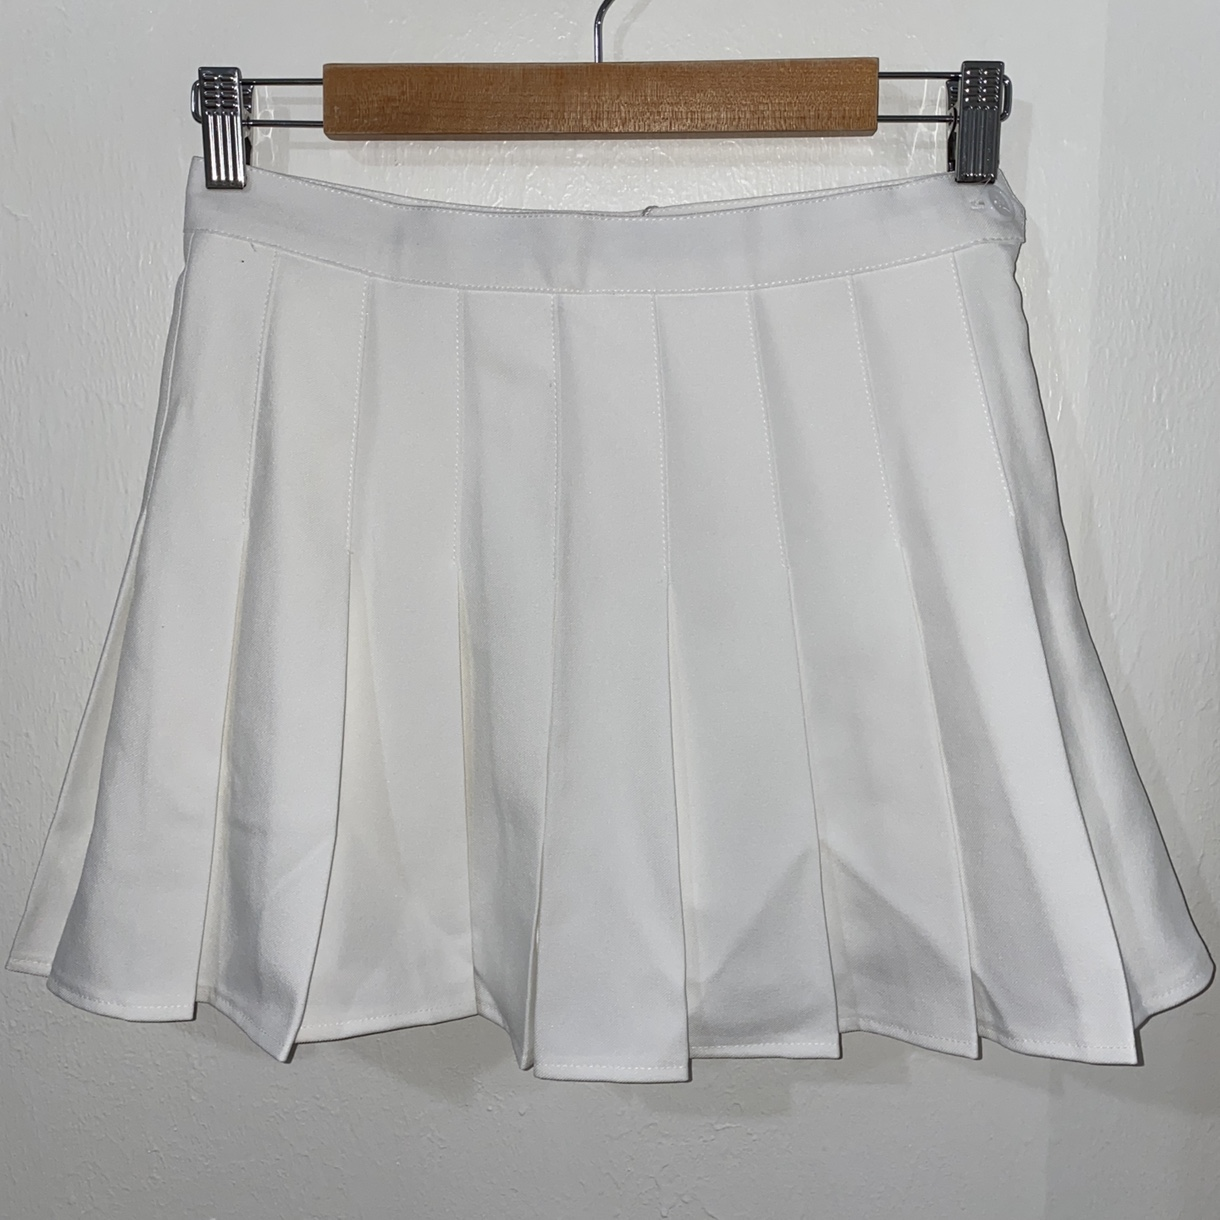 Product Image 1 - White Tennis Skirt With Shorts